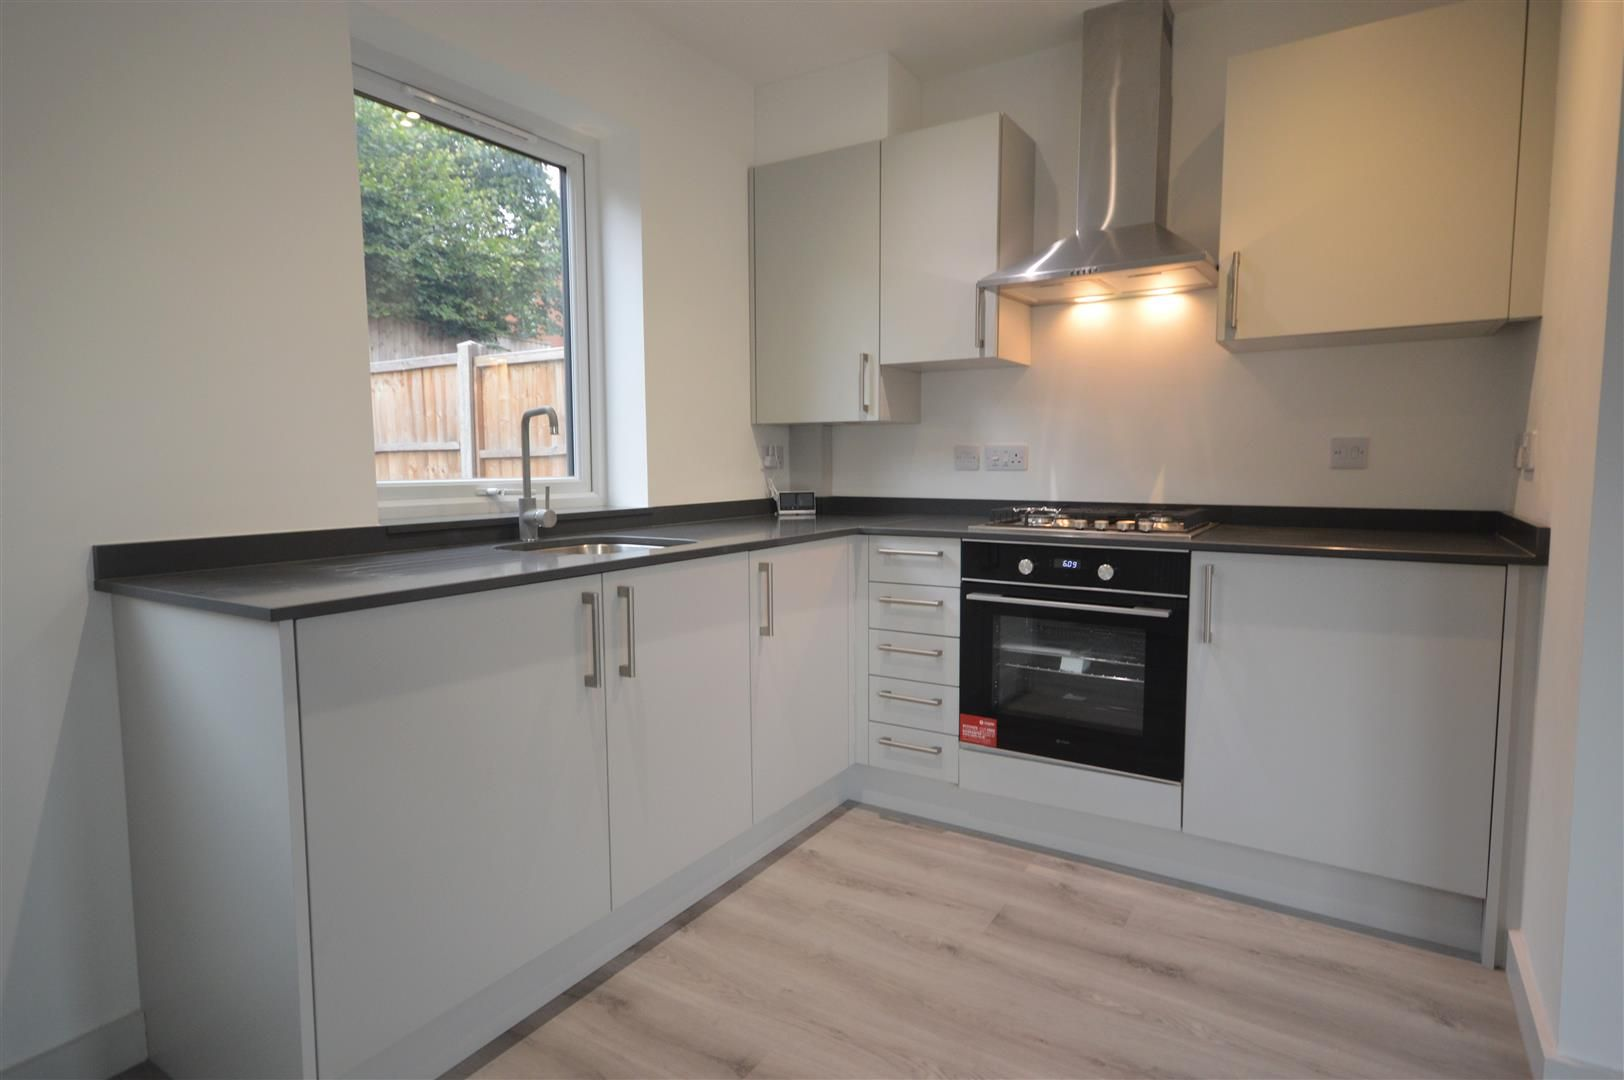 2 bed semi-detached for sale in Leominster 3